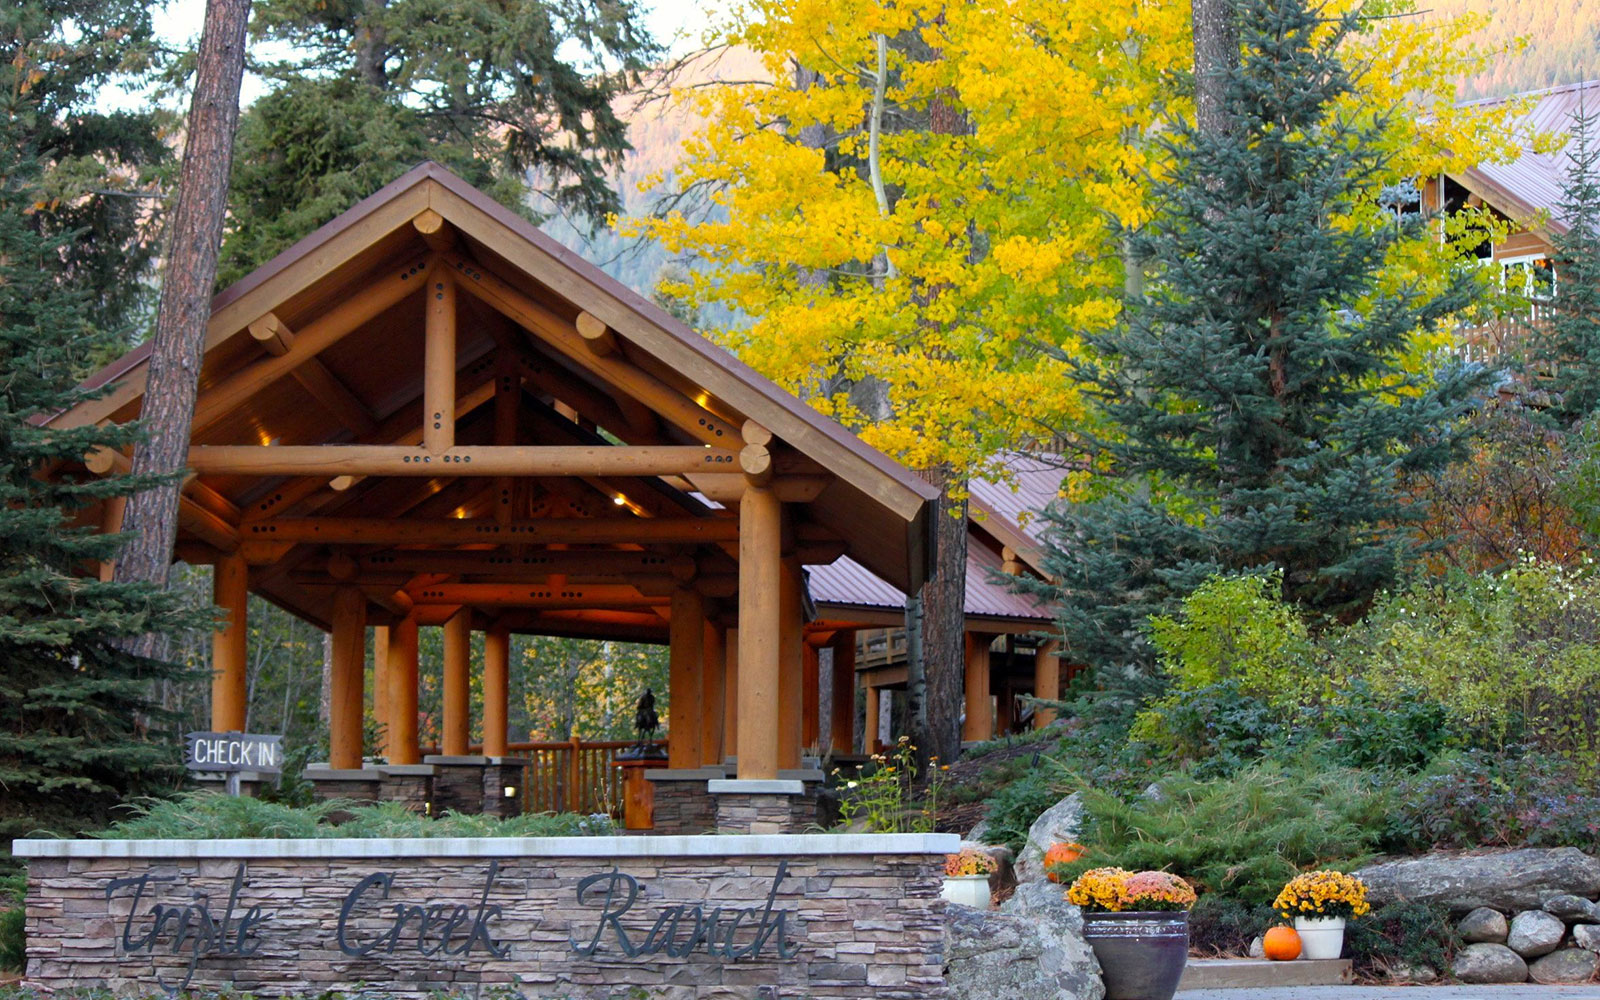 America's Best Hotels for Fall Colors: Triple Creek Ranch, Darby, MT